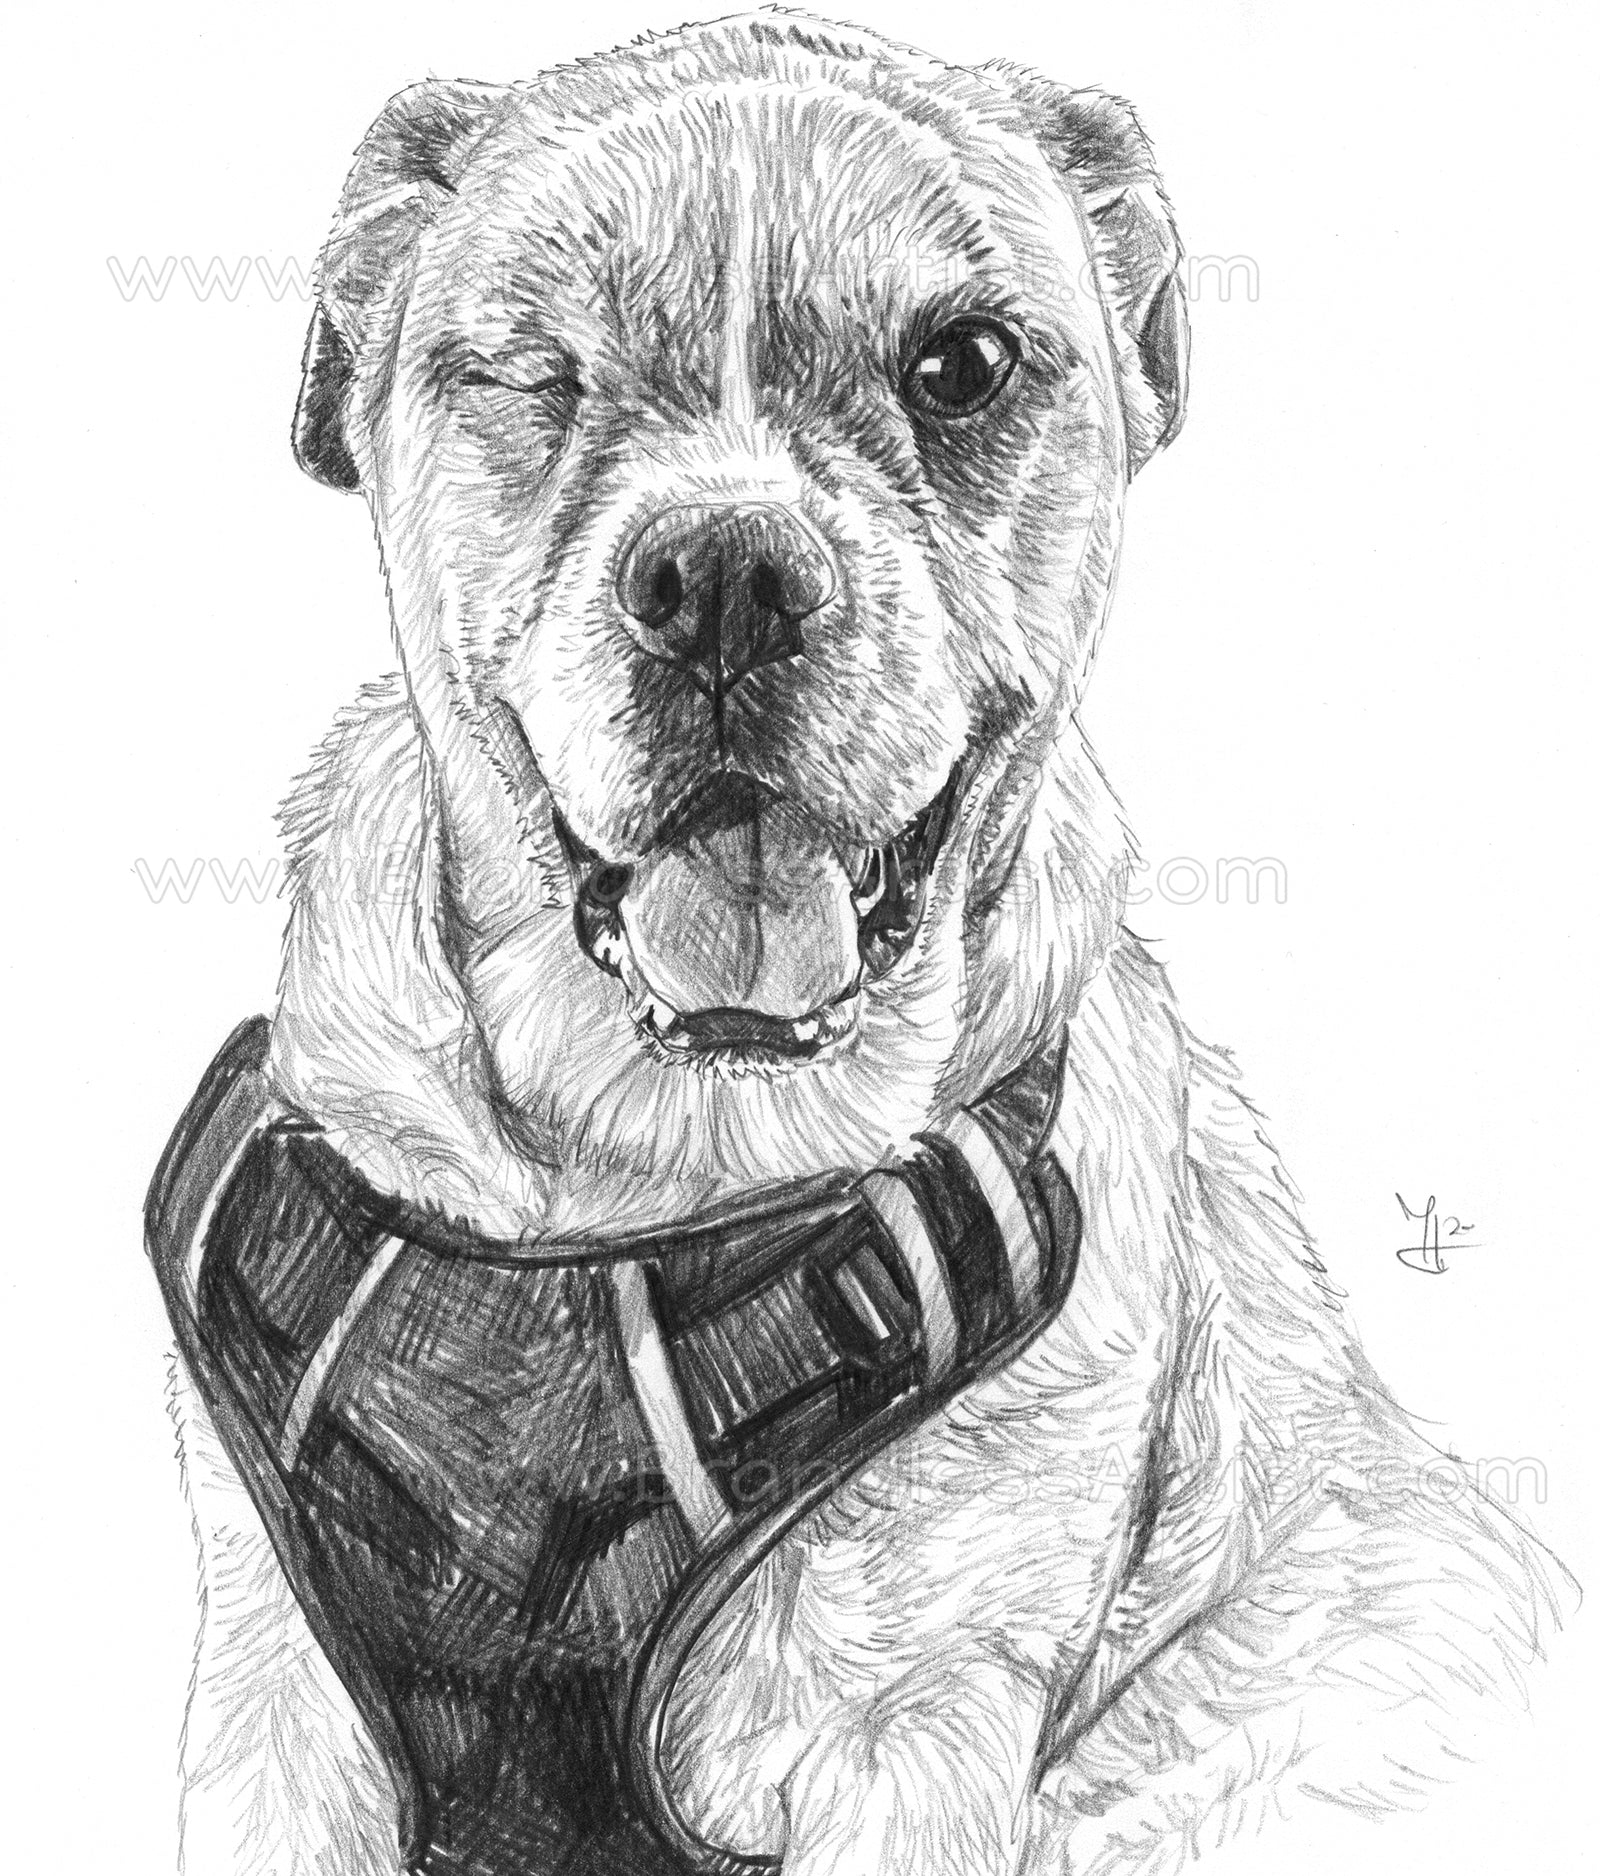 Cute Dog Sketch from Photo - Pencil Drawing Portrait | Brandless Artist